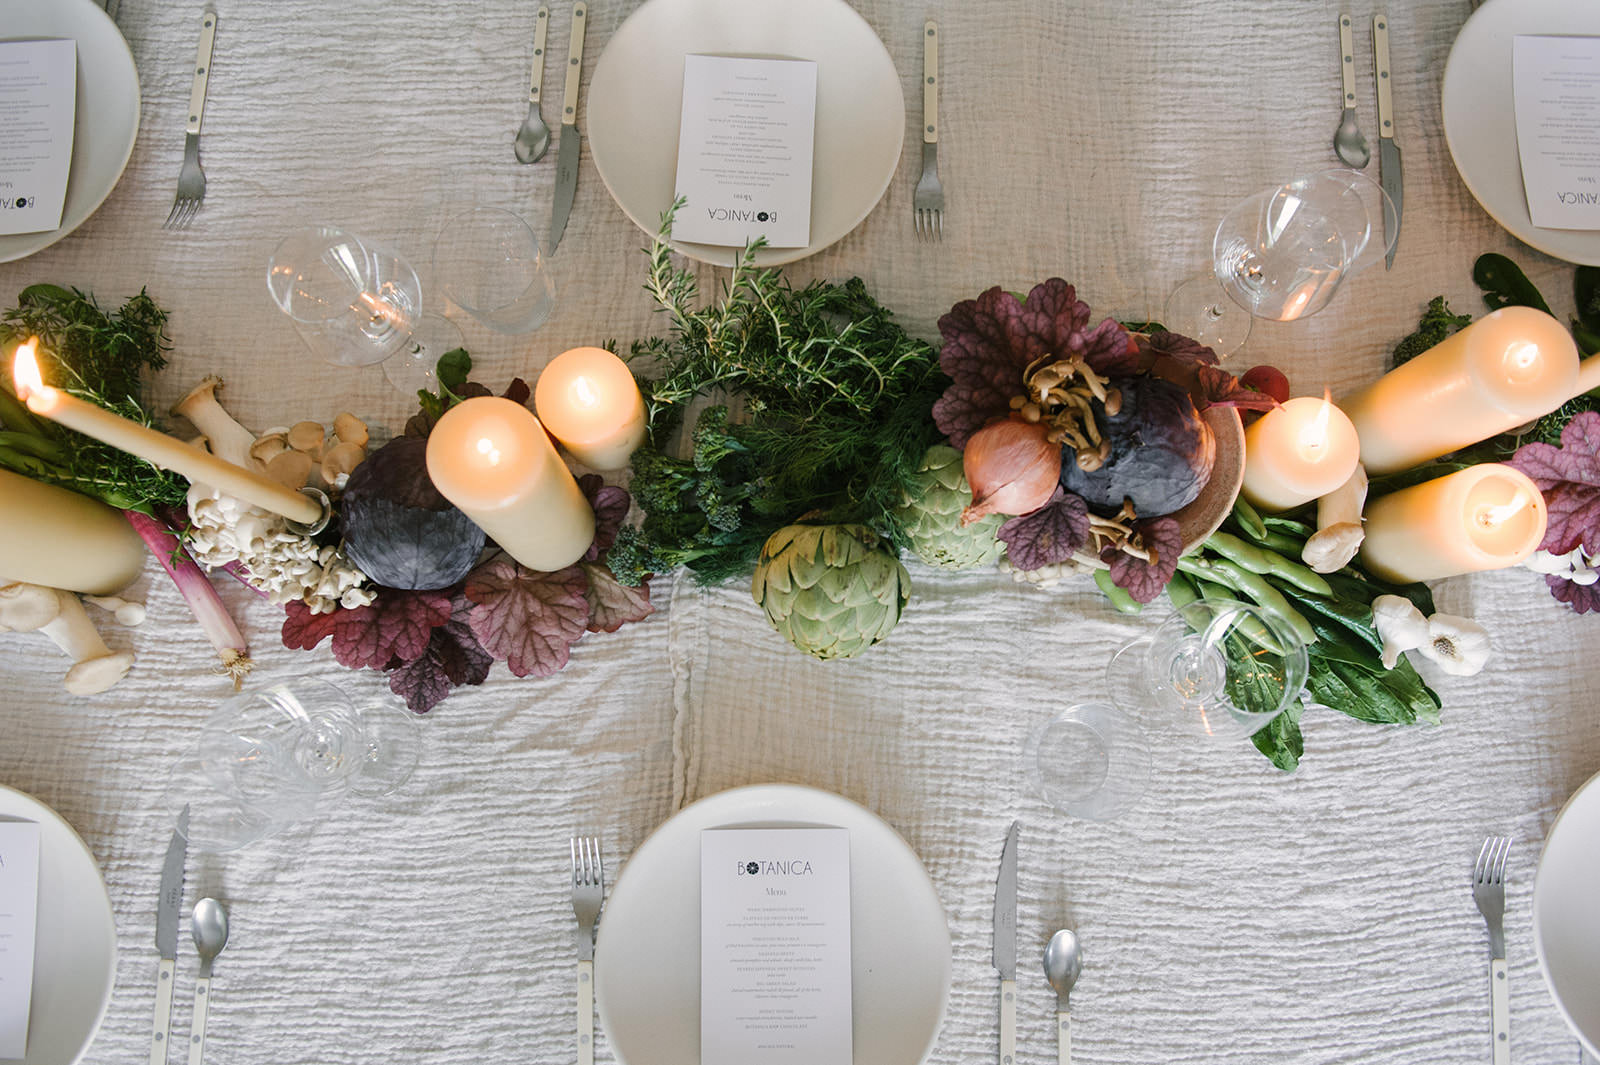 Beautiful vegetable table runner with candles and fall harvest. Such a great thanksgiving or fall tablescape idea!